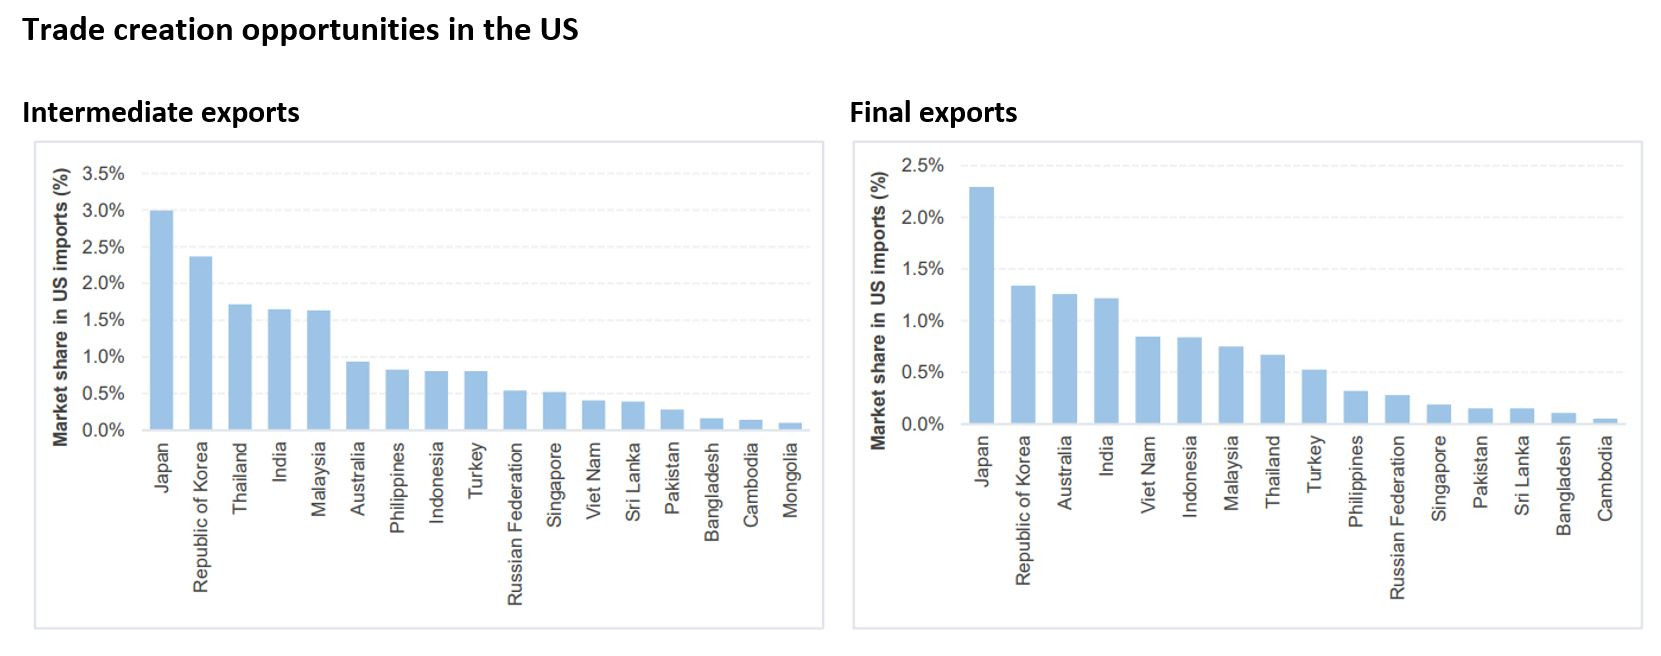 Trade creation opportunities in the US